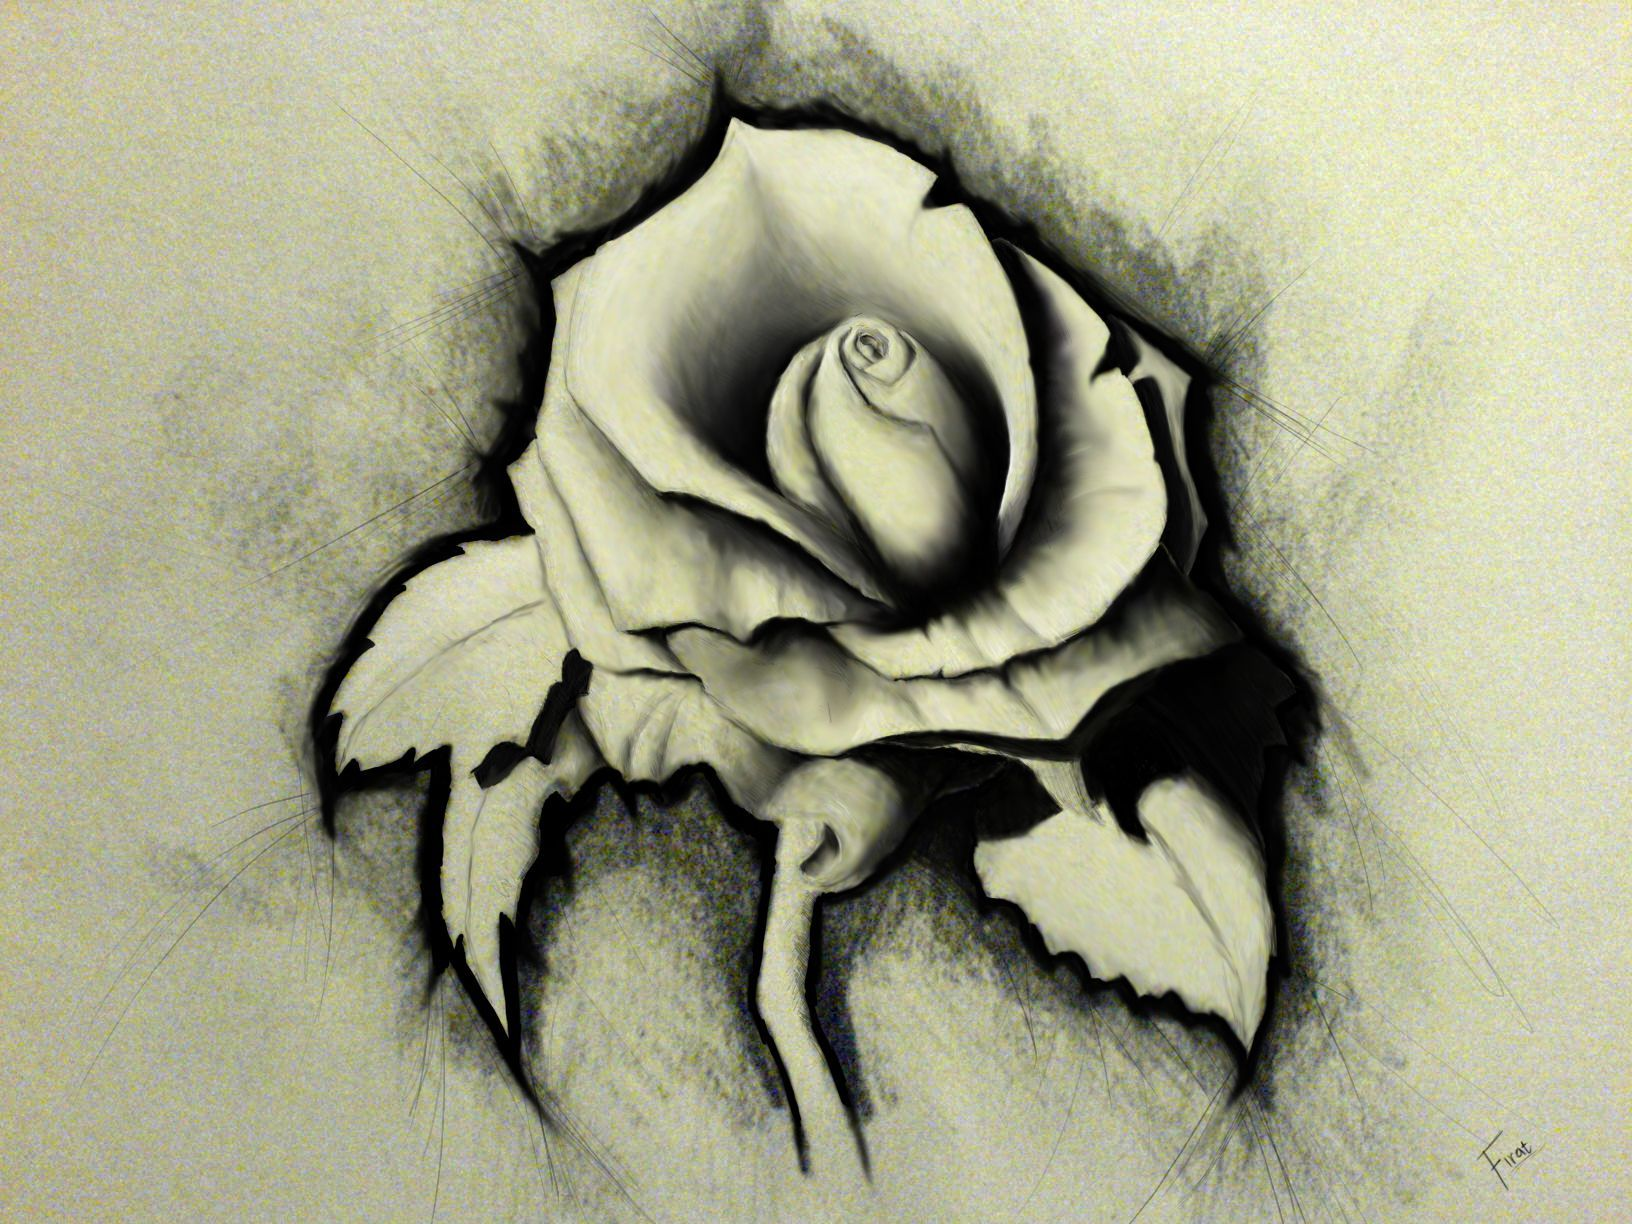 Rose pencil drawing hd wallpaper 2127 wallpaper freewallpic